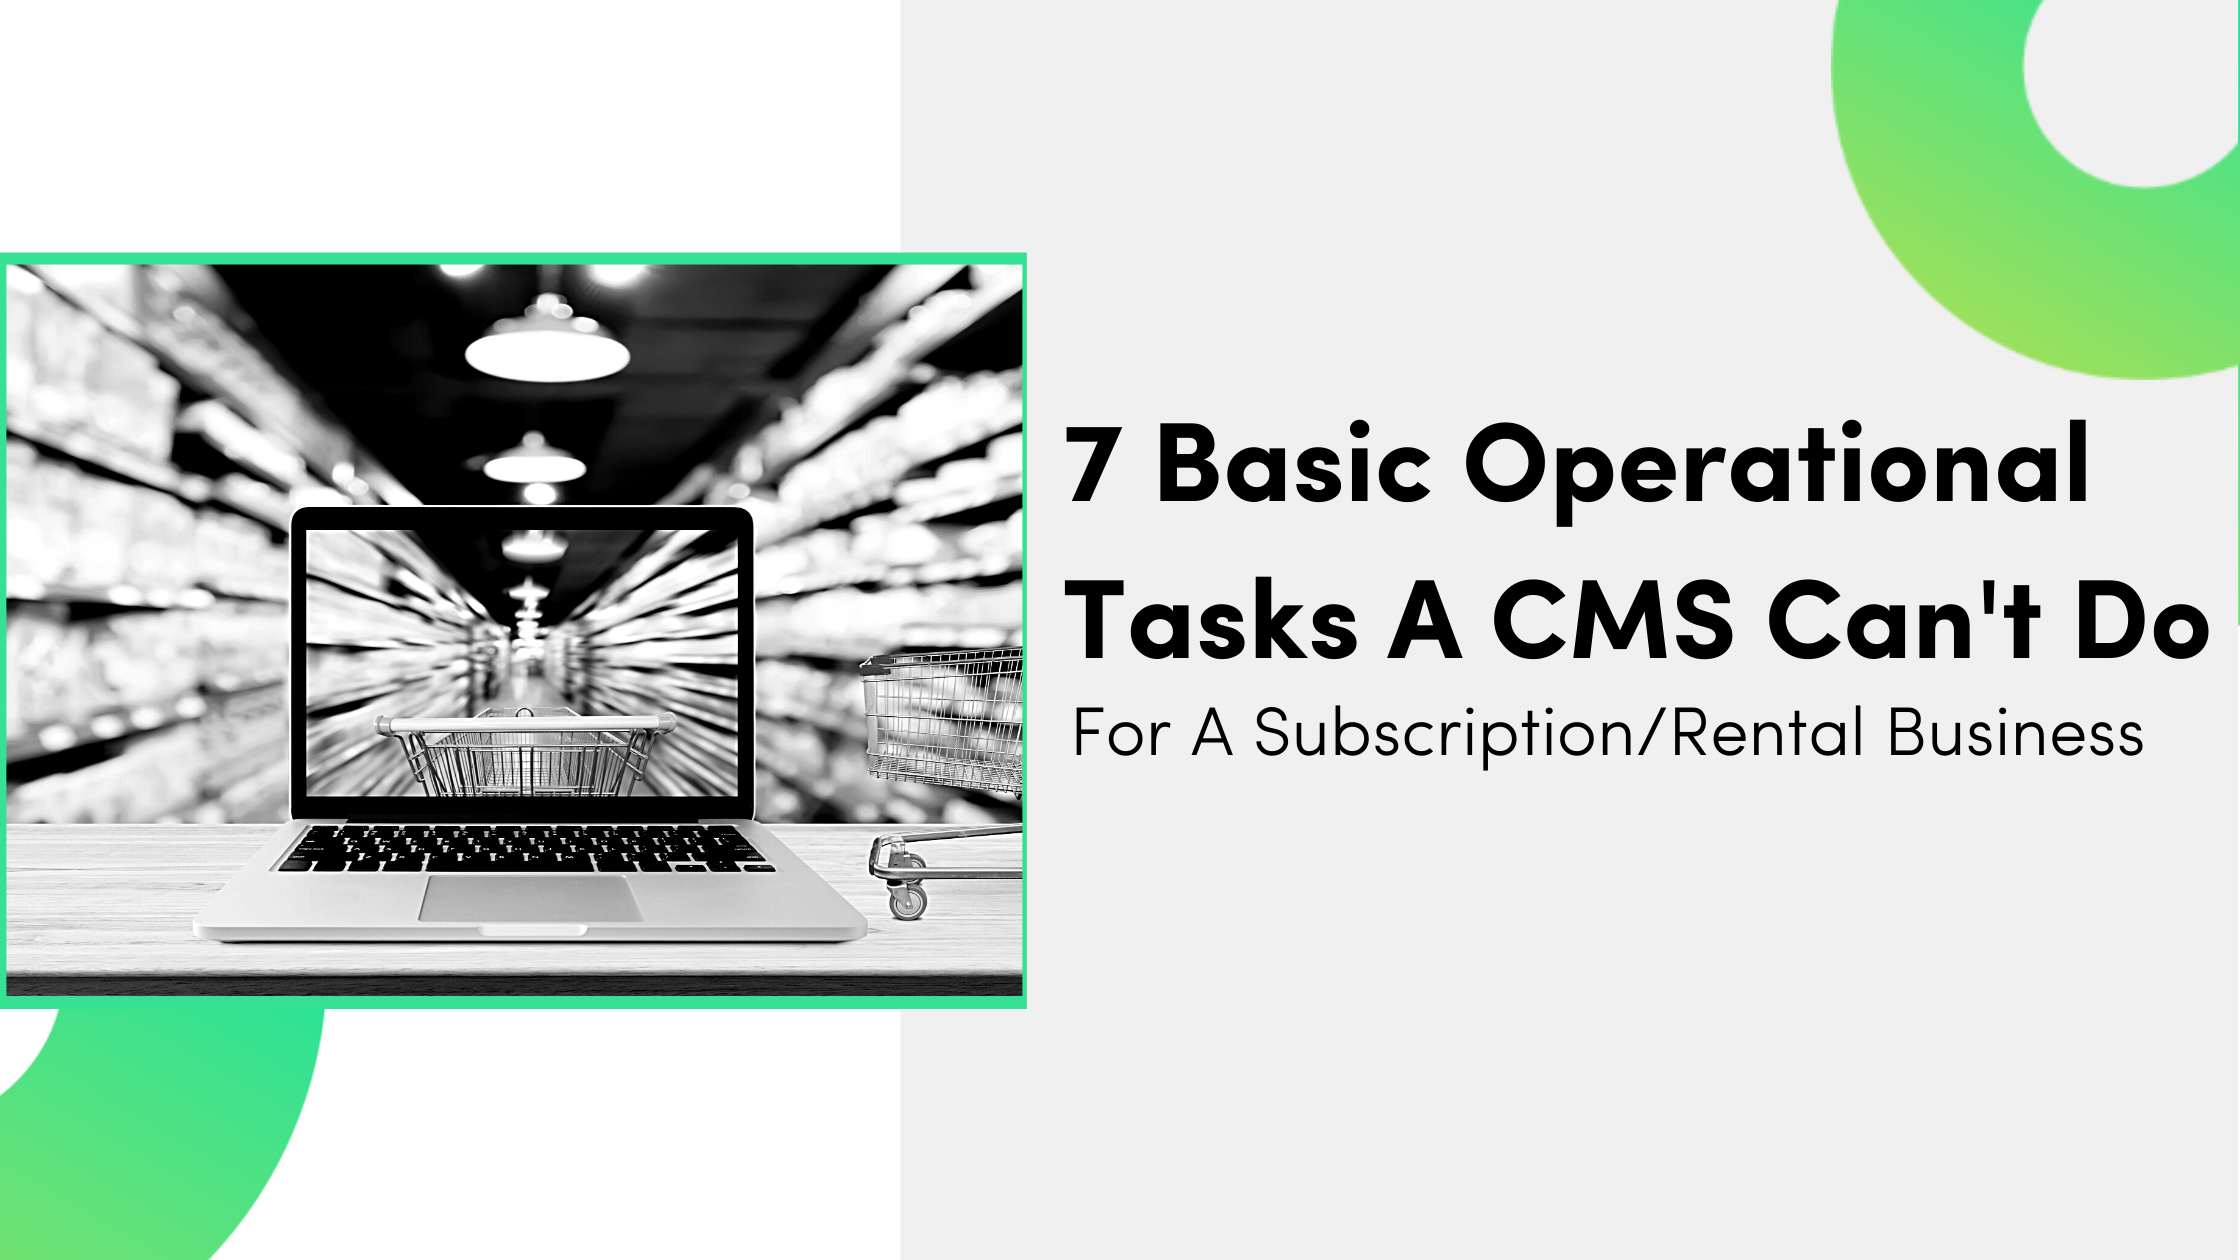 7 Basic Operational Tasks a CMS Can't Do for a Subscription/Rental Business